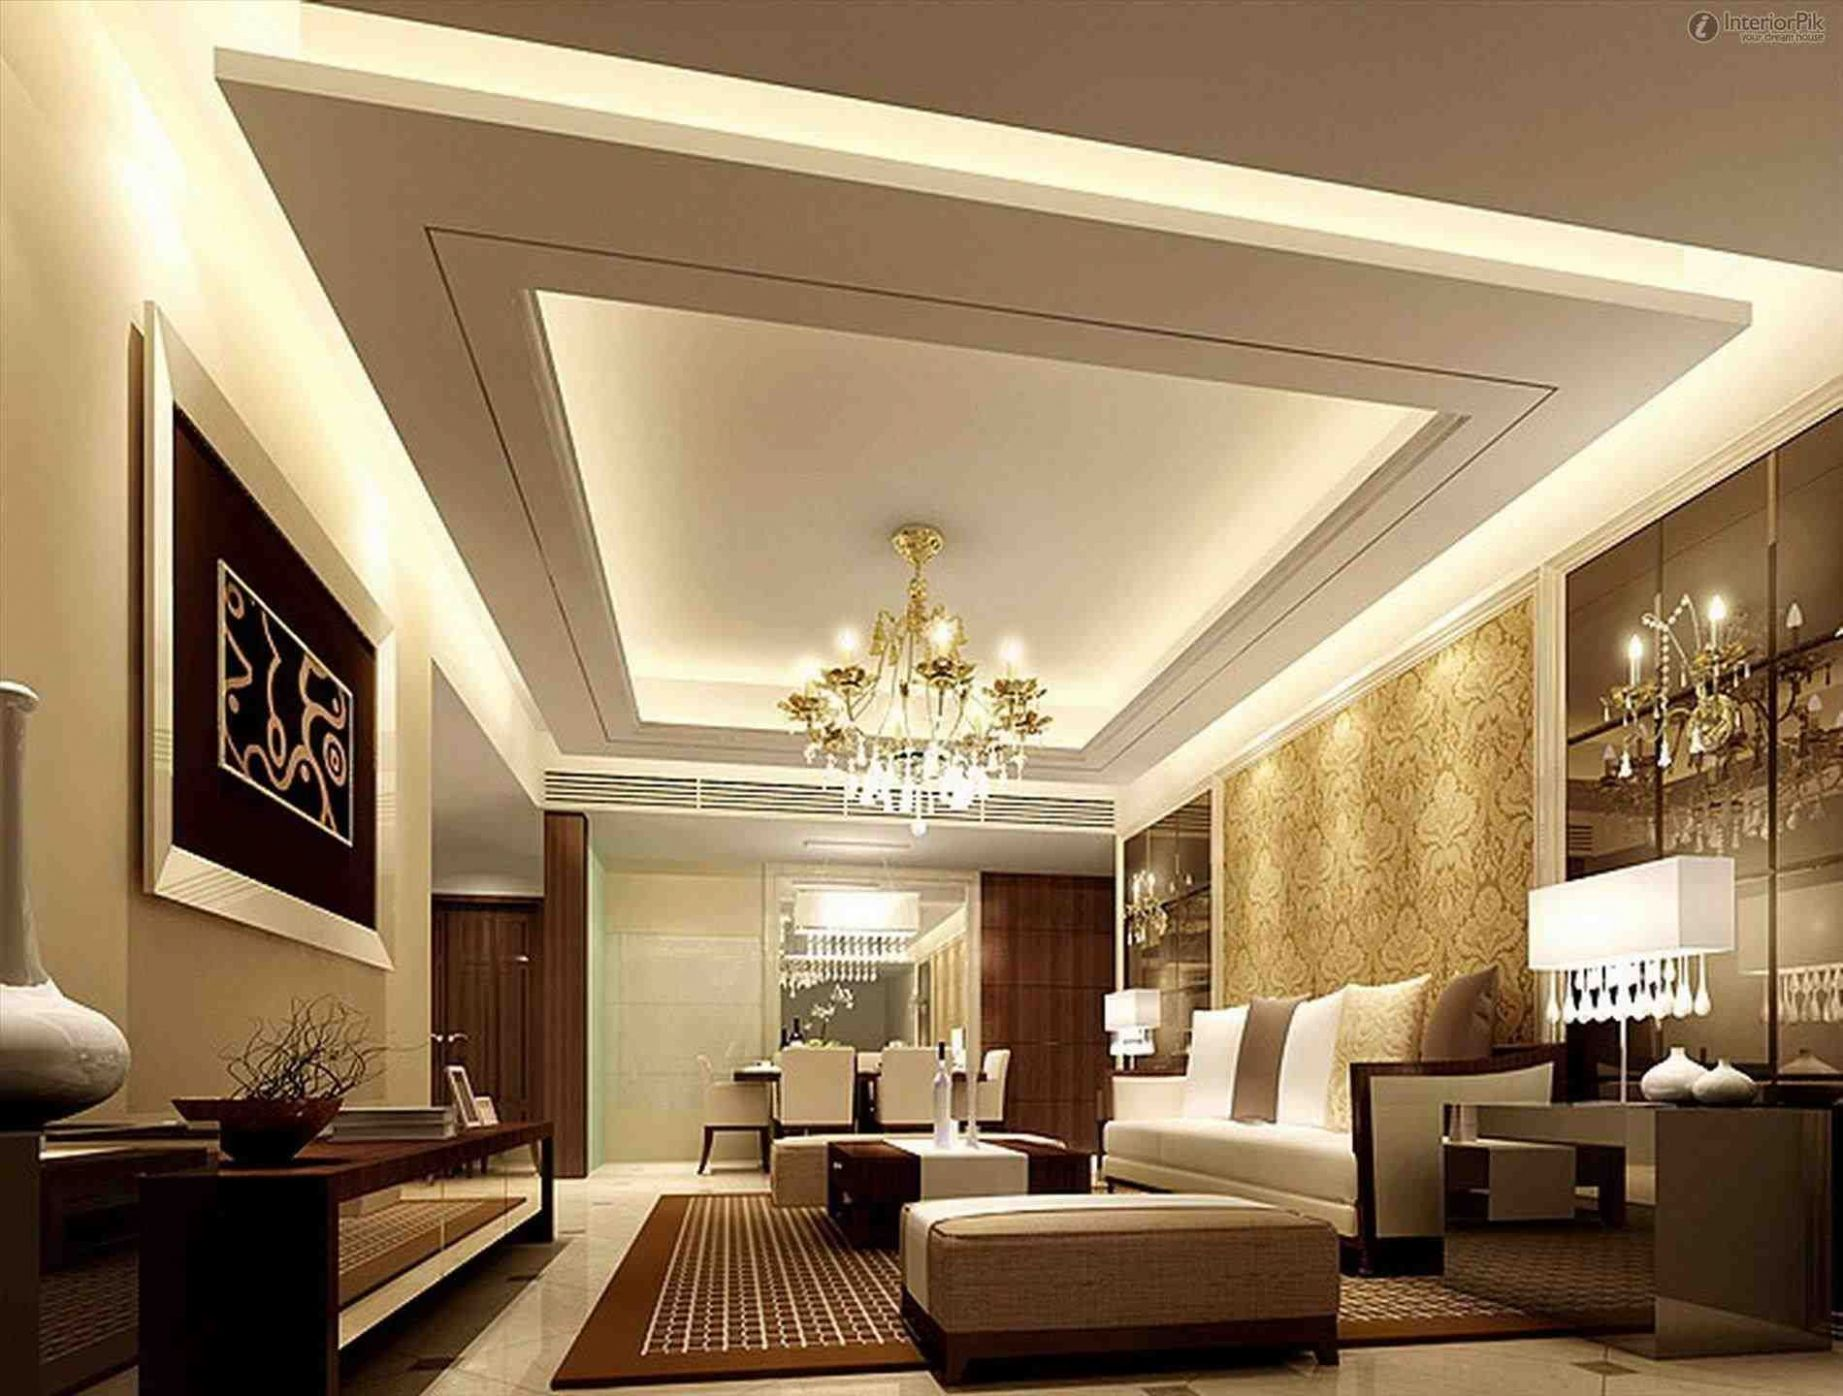 Image result for living room decor ideas south africa | Simple ...